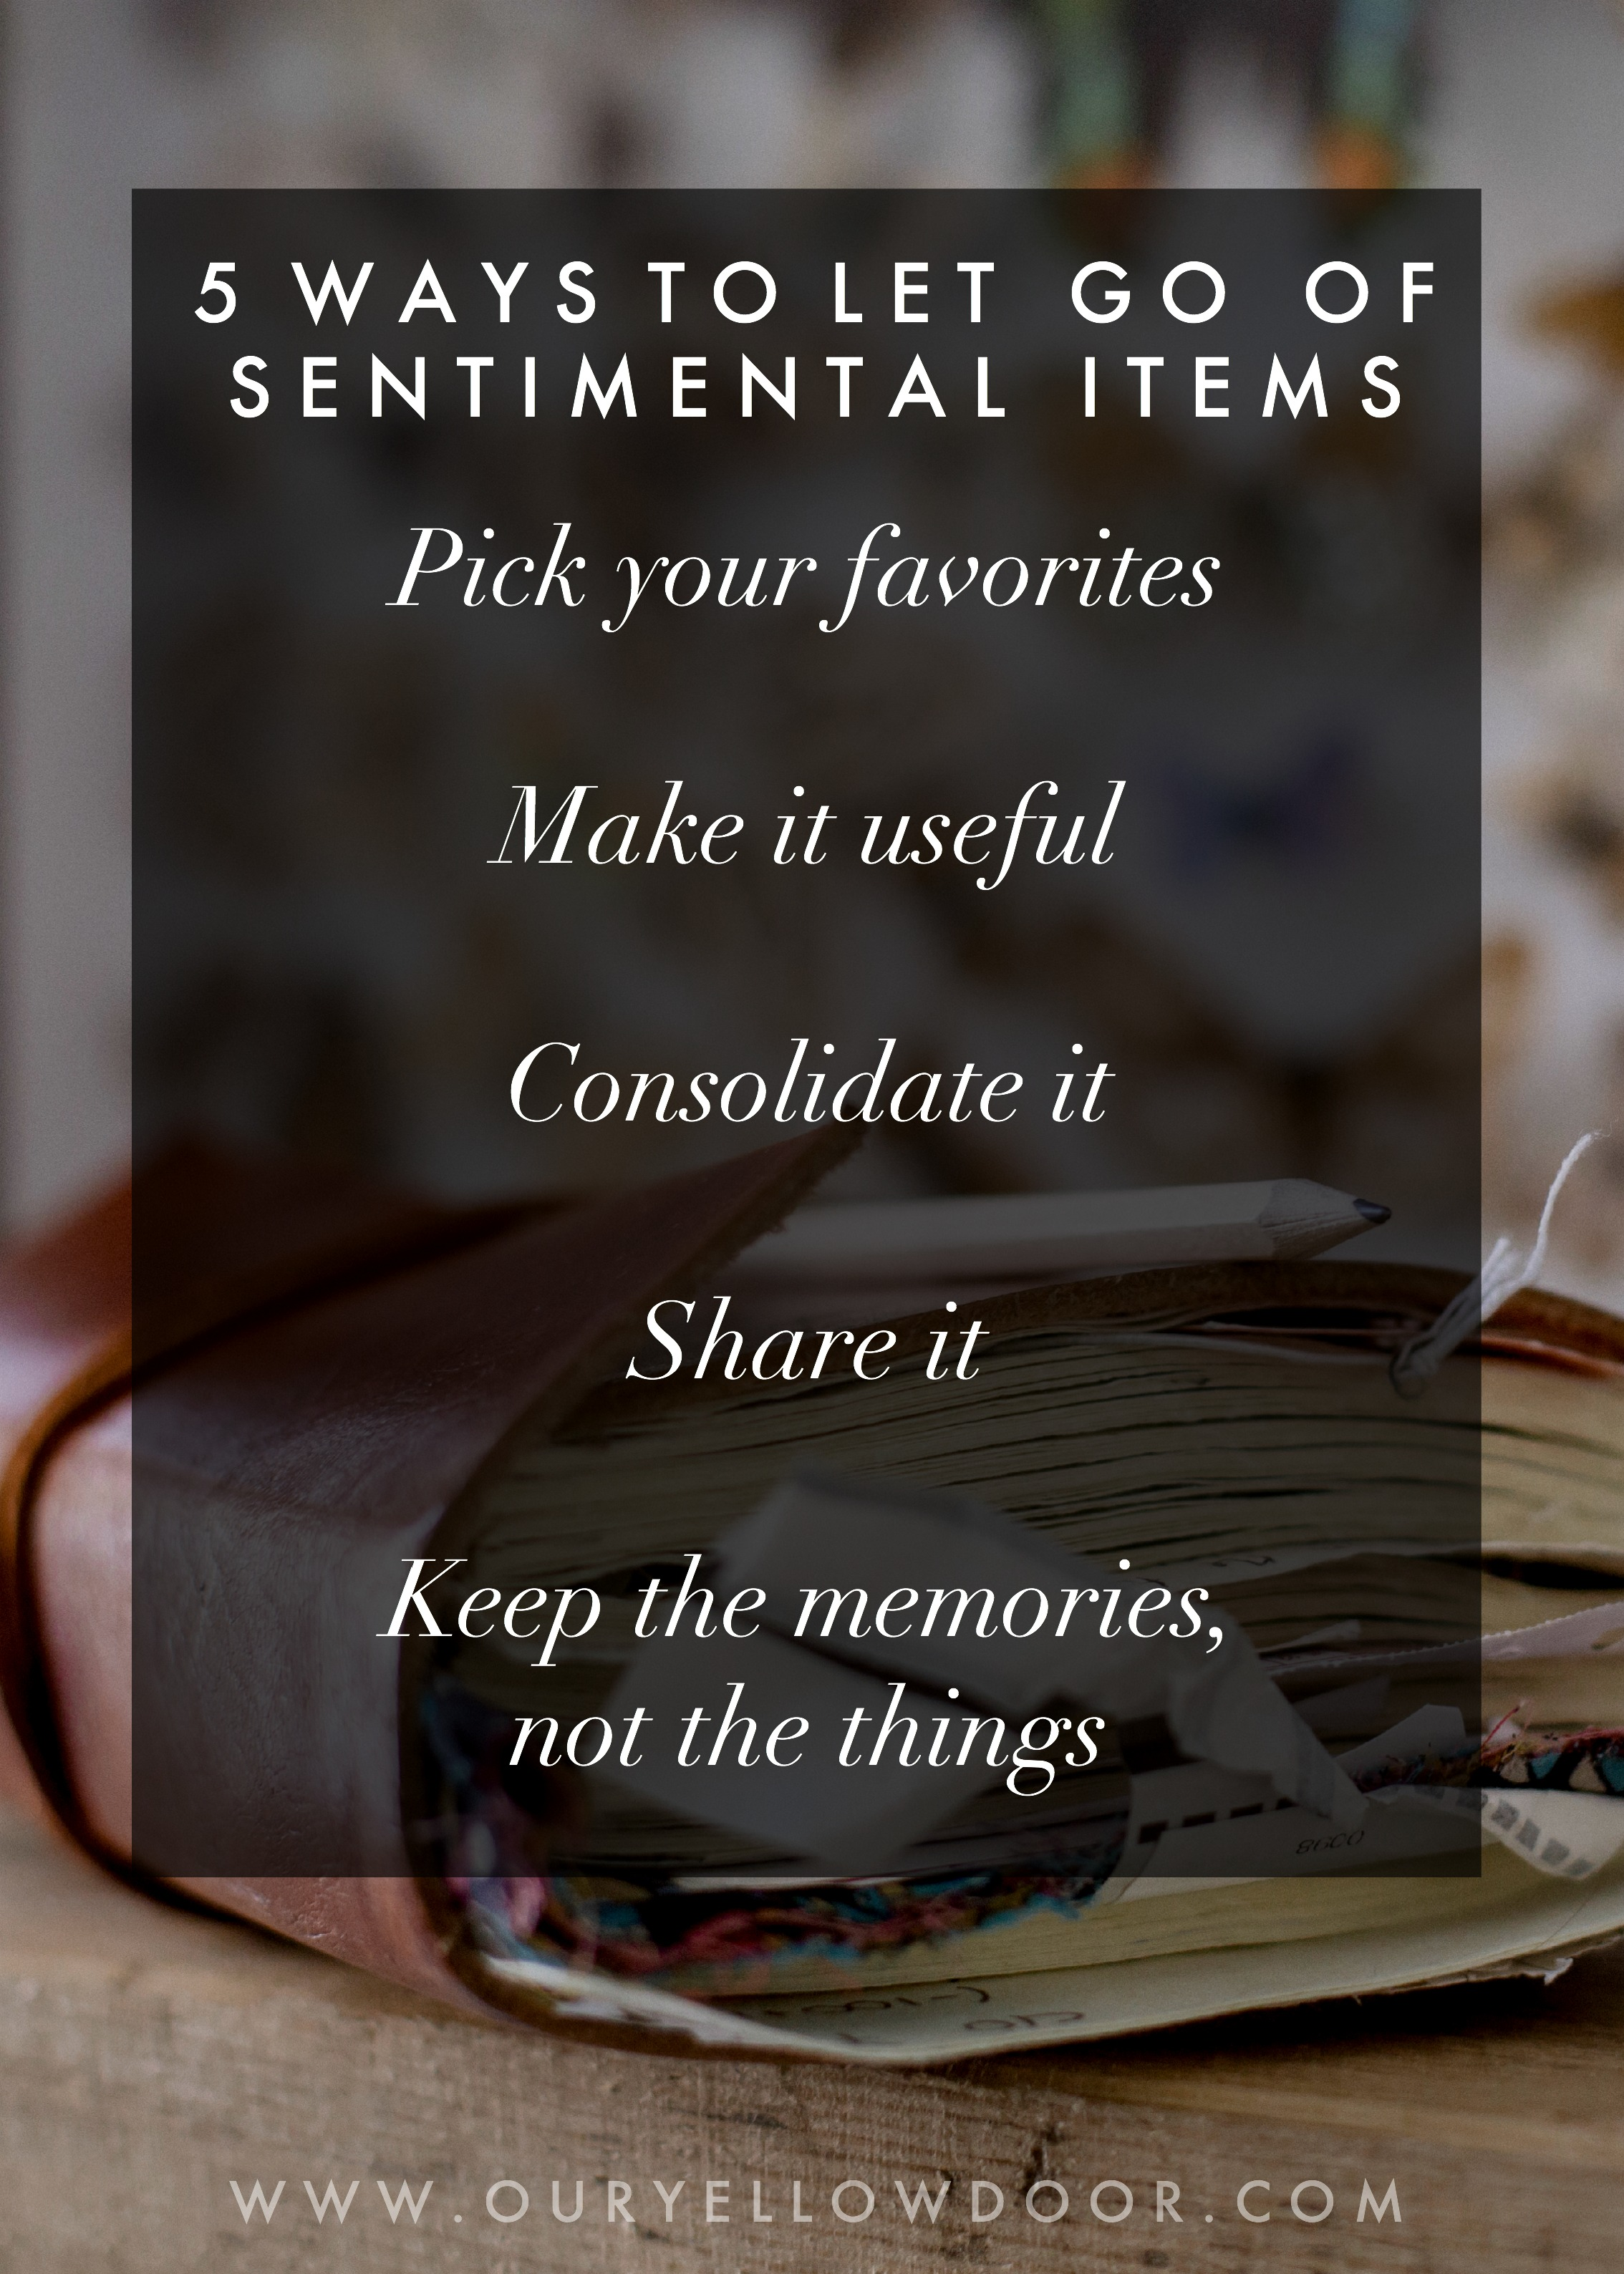 5 Ways To Let Go of Sentimental Items